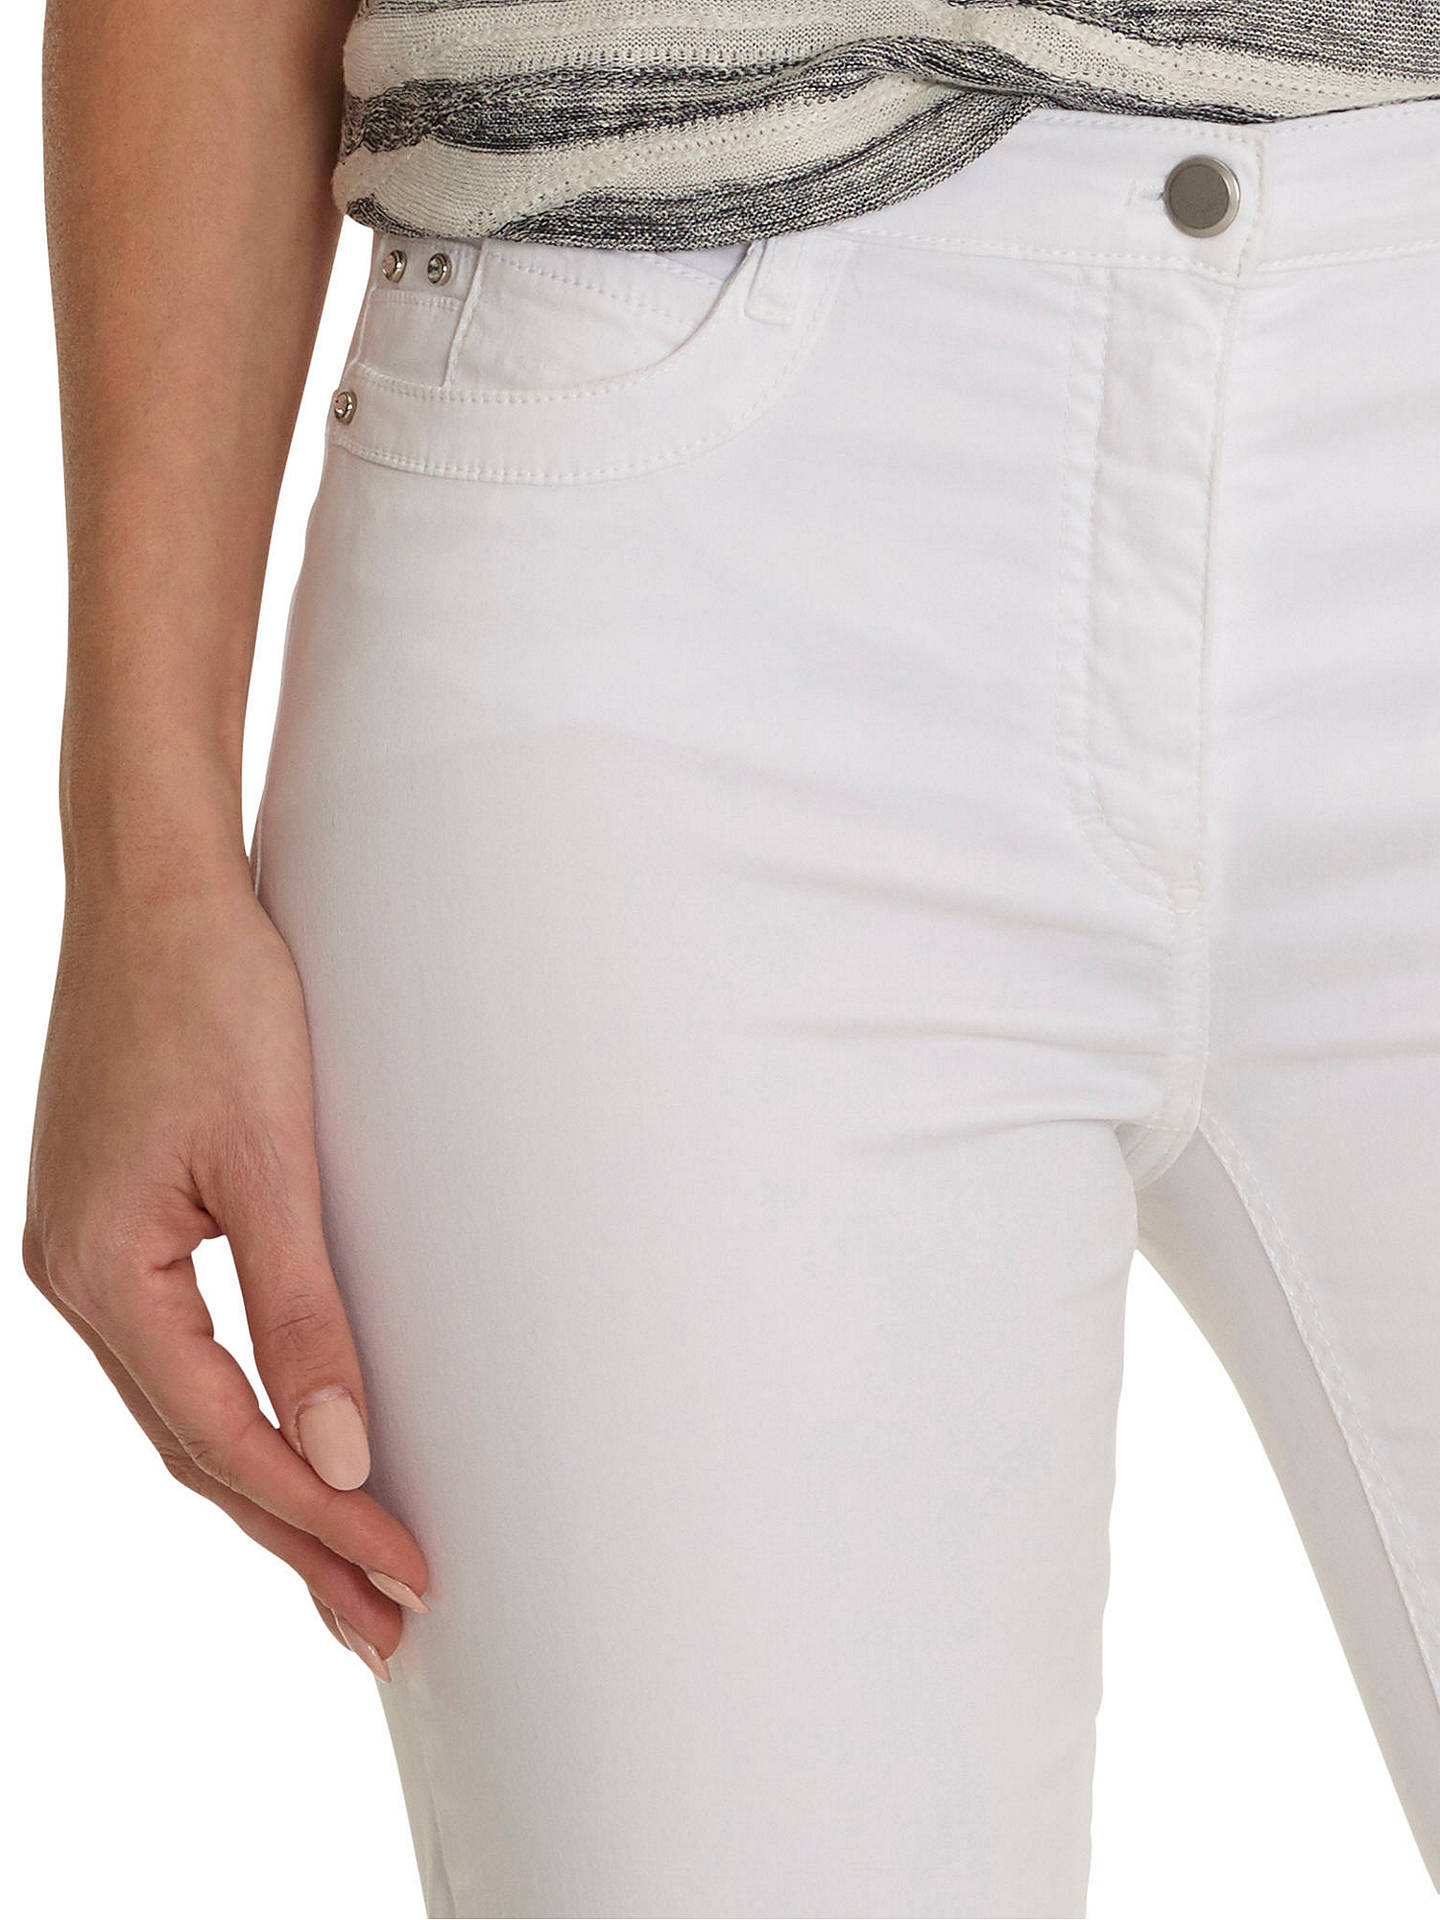 BuyBetty Barclay Perfect Body Jeans, Off White, 10 Online at johnlewis.com